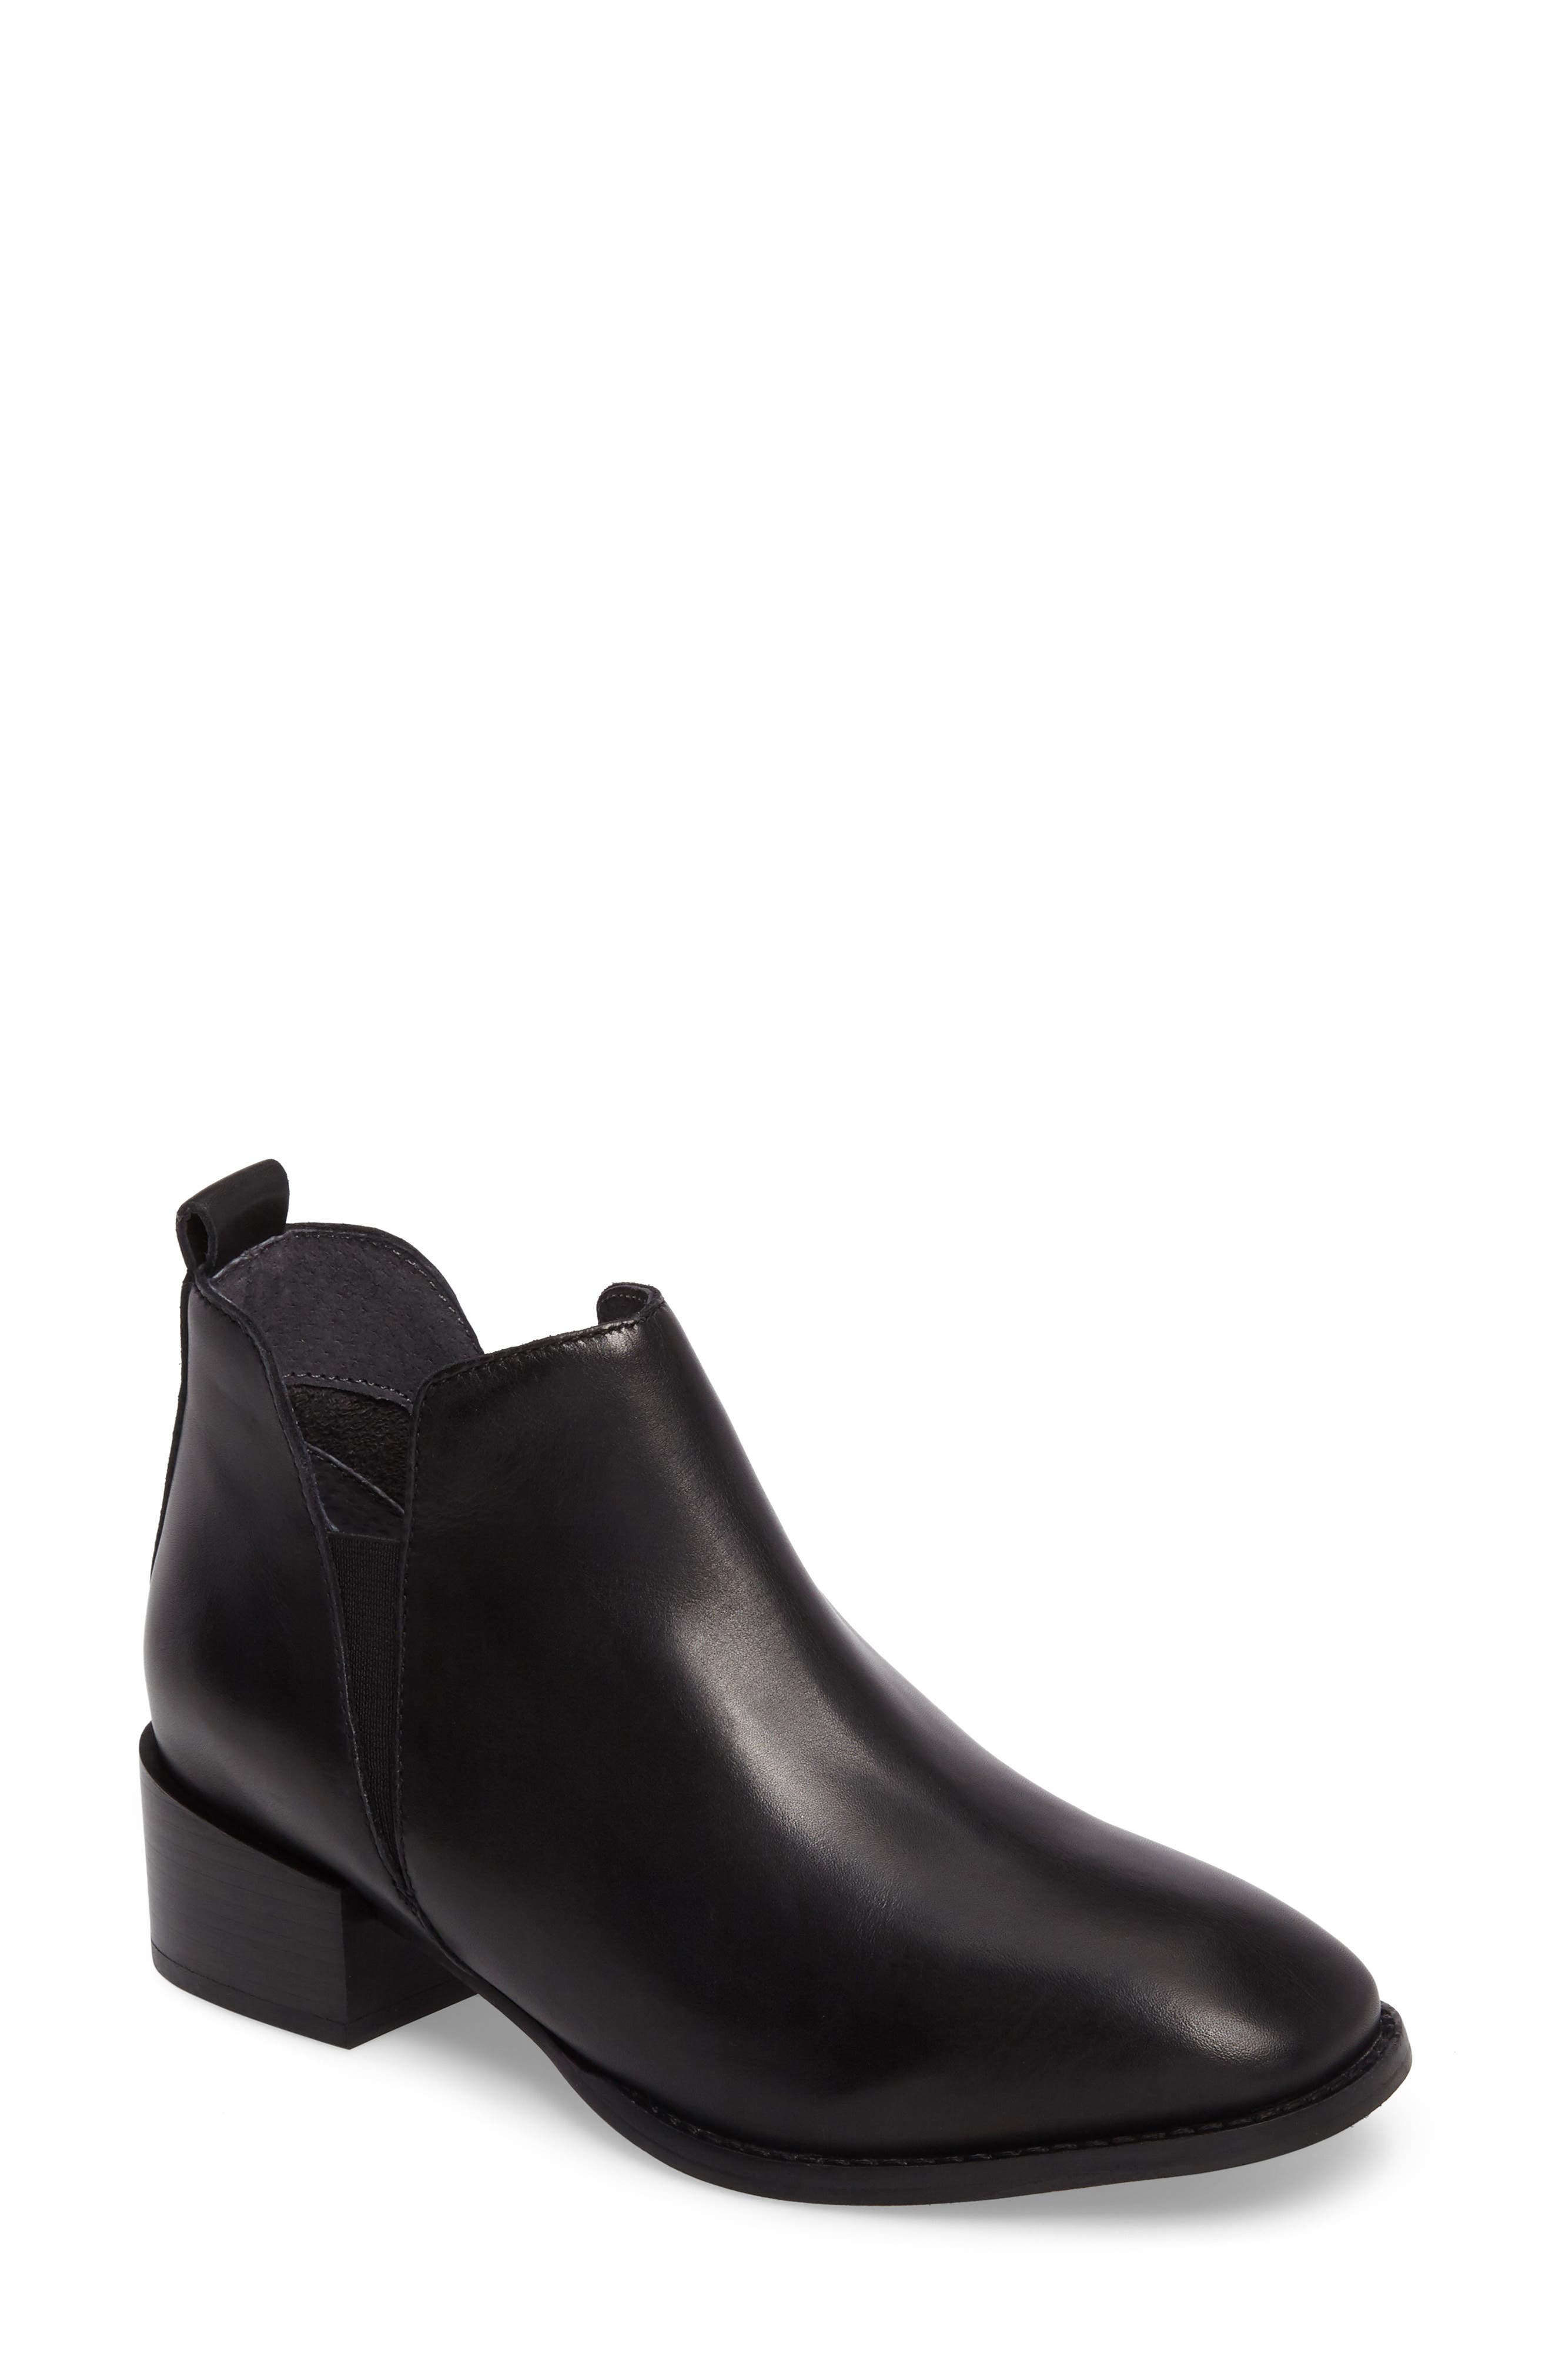 Offstage Boot,                         Main,                         color, BLACK LEATHER